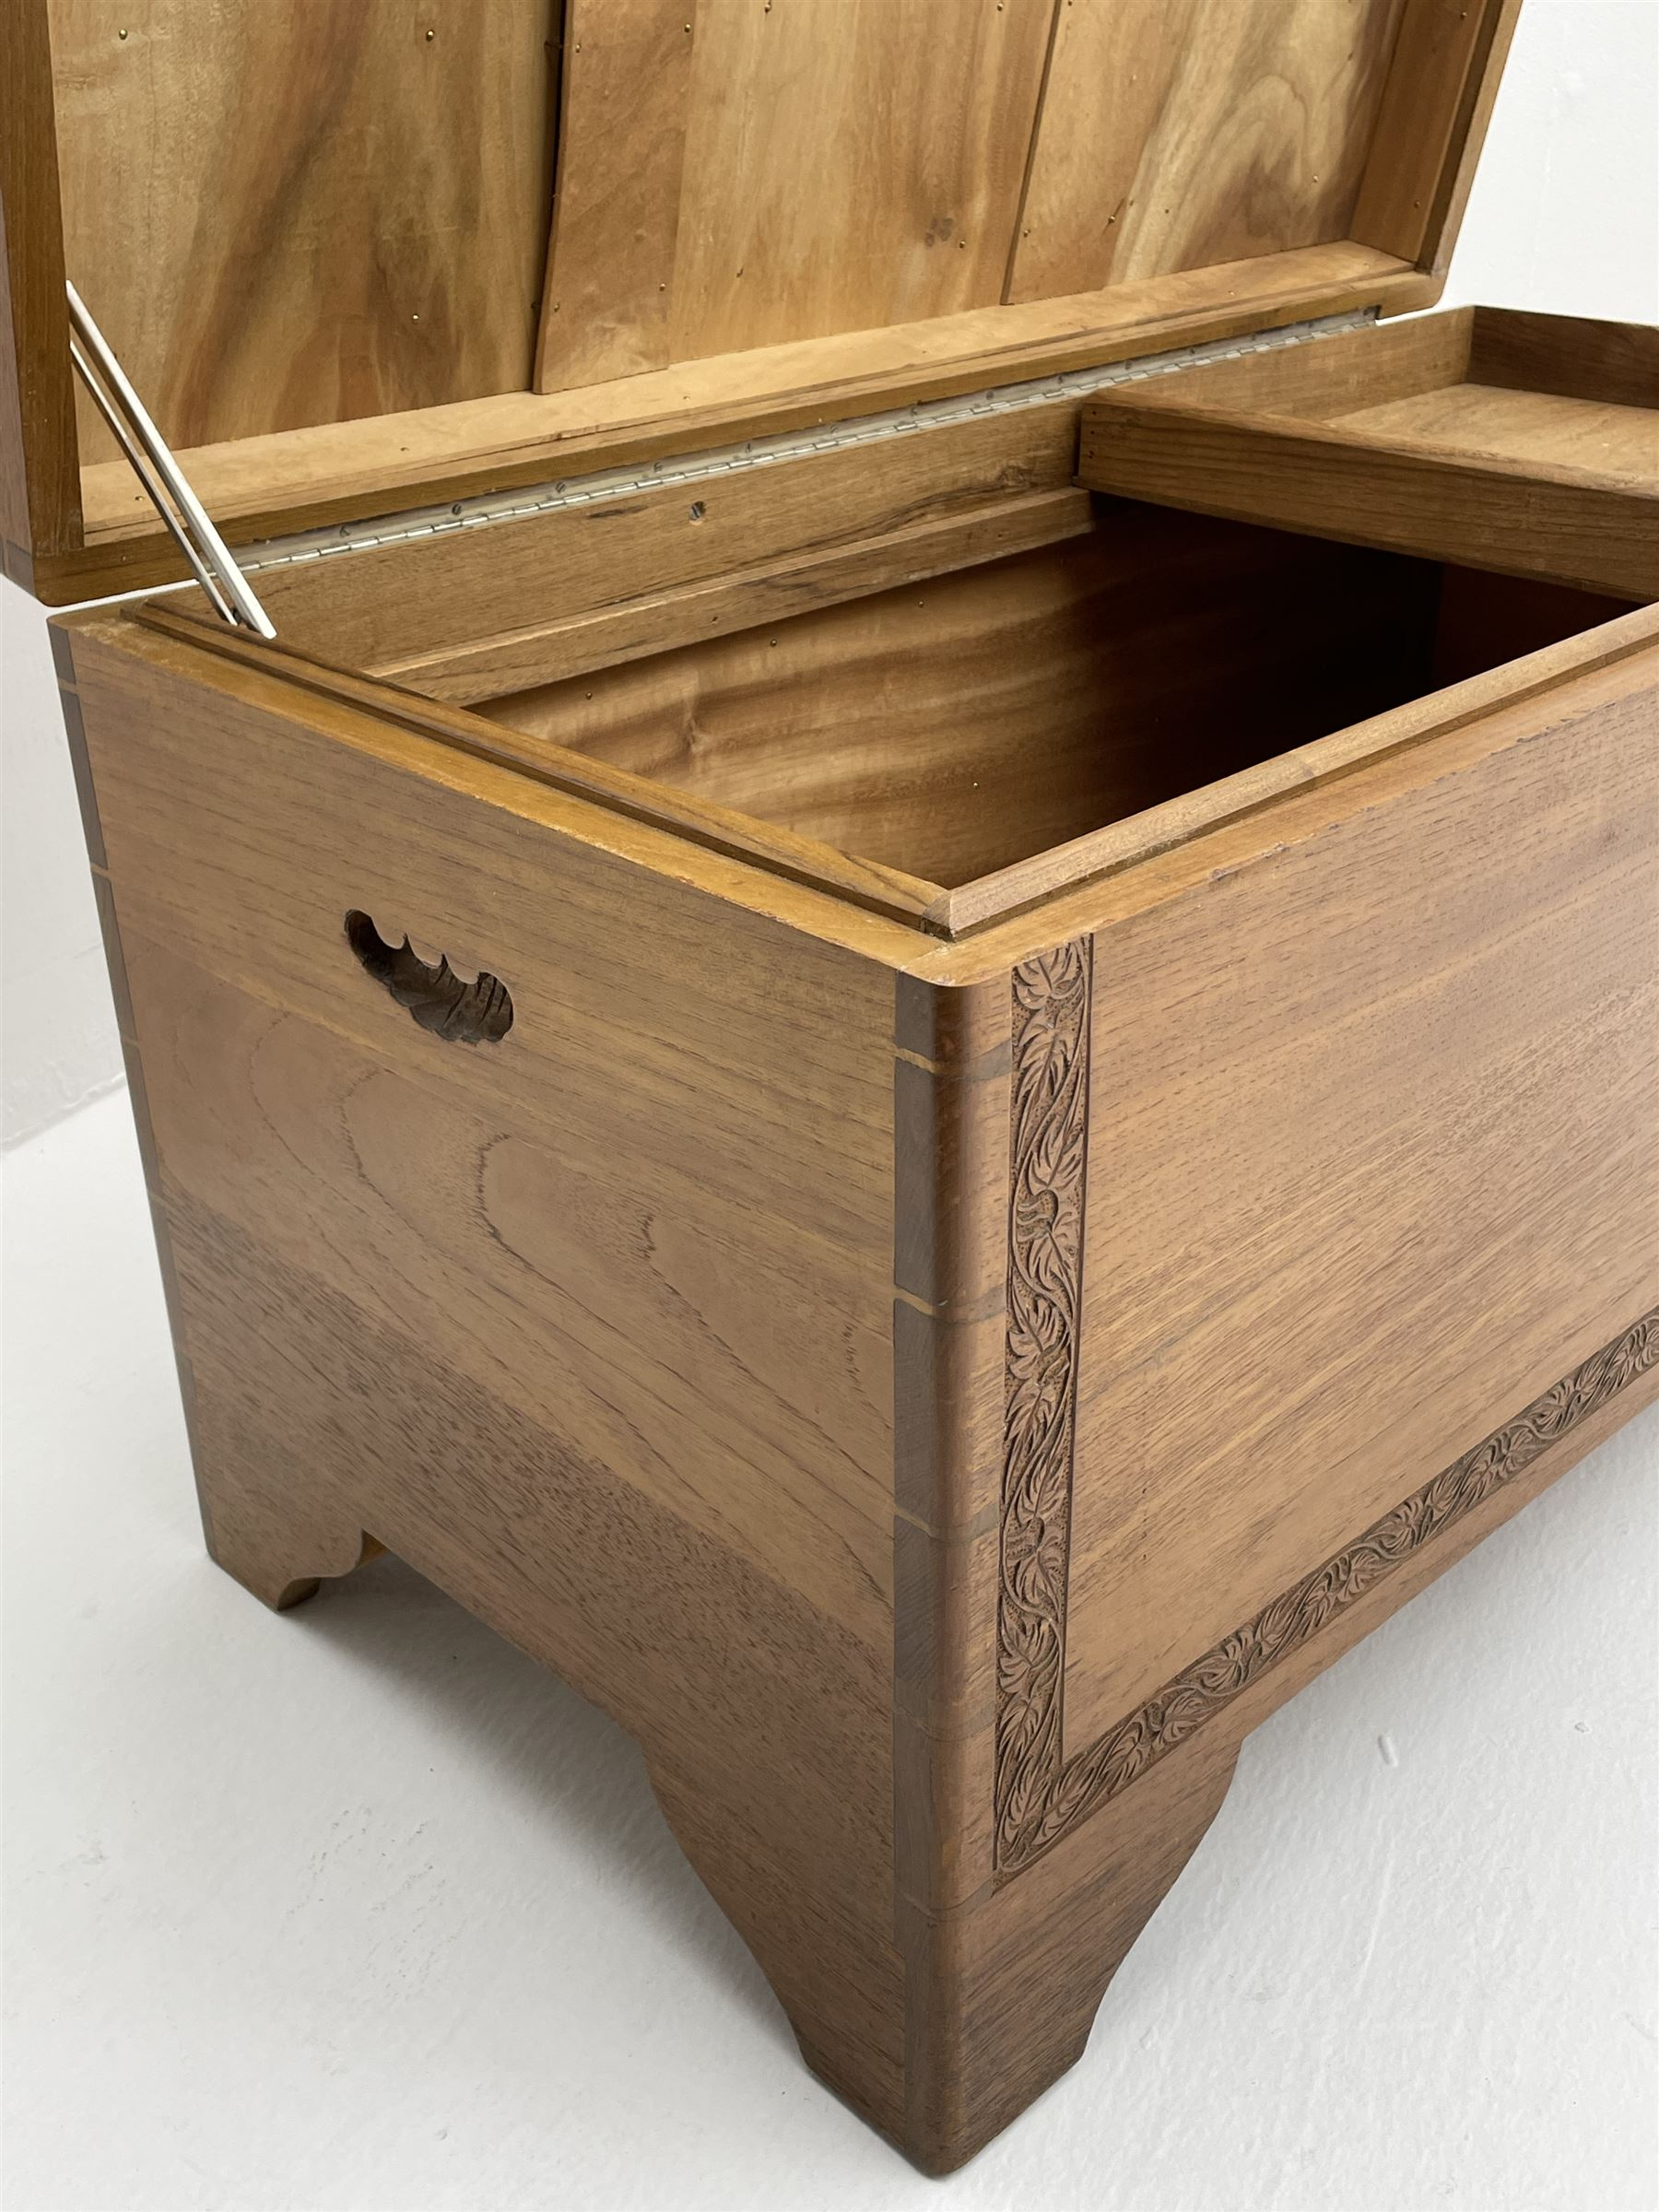 Late 20th Century camphor wood chest - Image 3 of 5